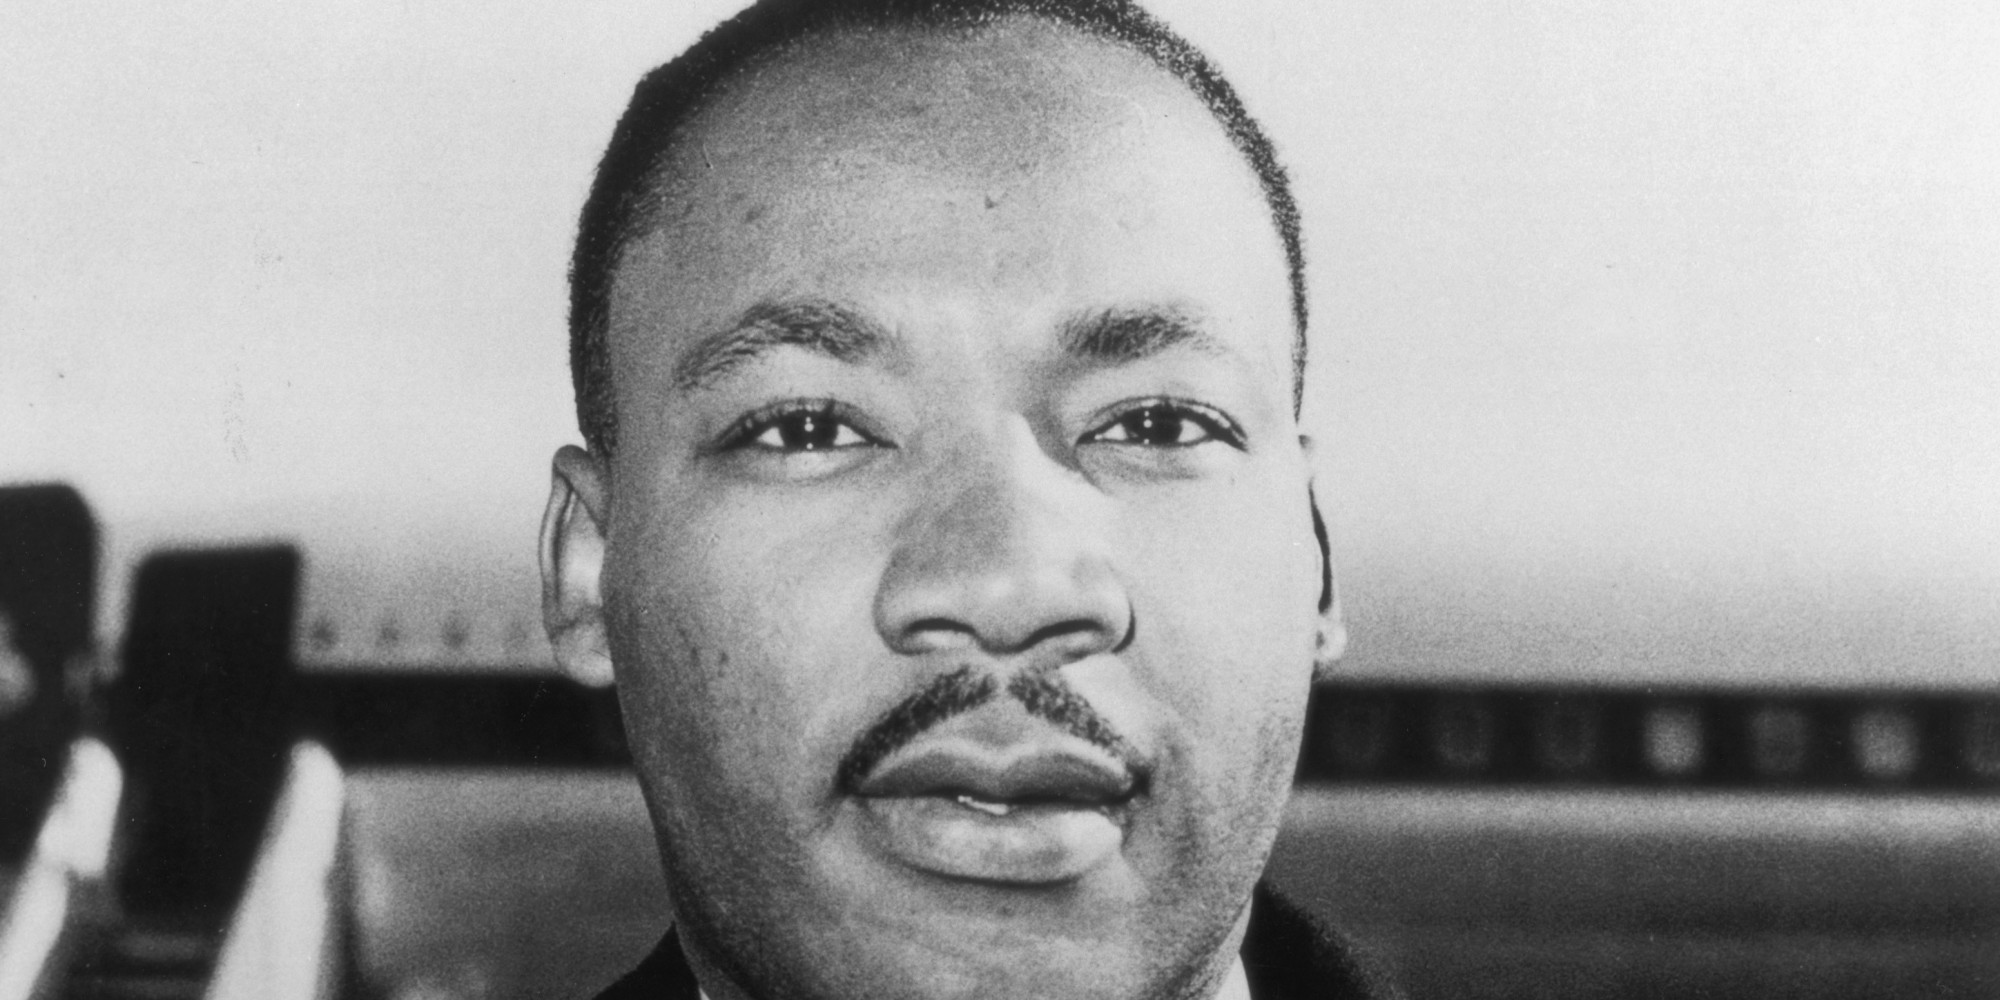 martin luther king jr latest news images and photos crypticimages